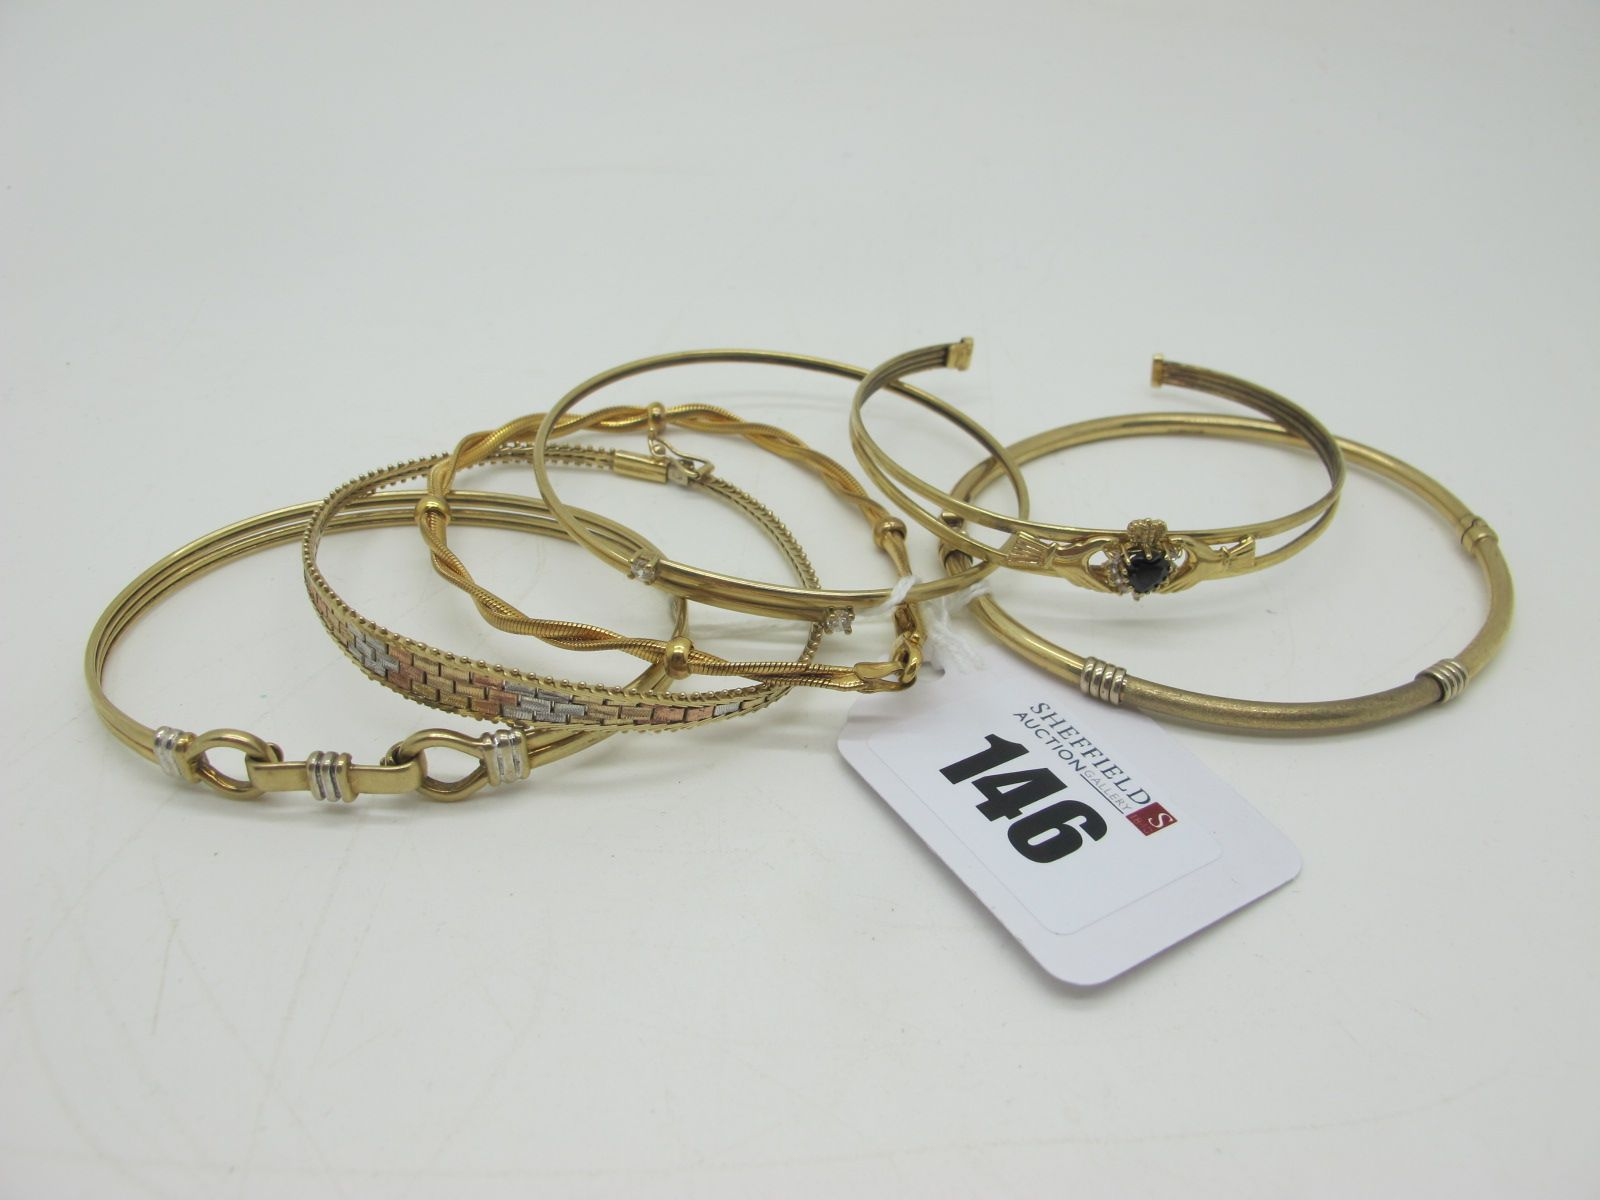 375 and Other Bangles and Bracelets. (6)